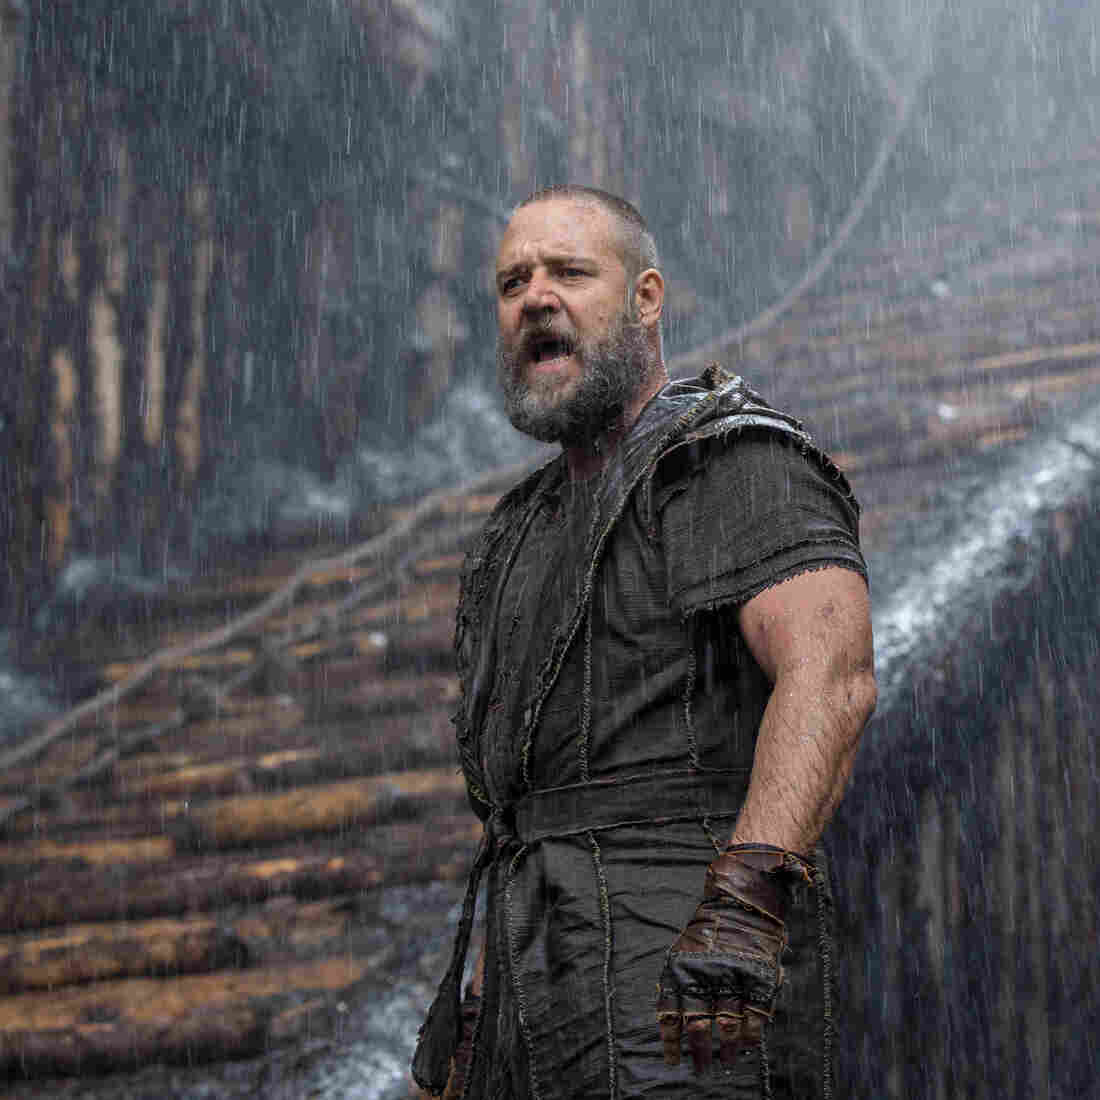 Russell Crowe, the lead in Darren Aronofsky's forthcoming biblical epic Noah, may have received a quick blessing from Pope Francis at a recent public audience, but the movie is drawing criticism in some quarters.